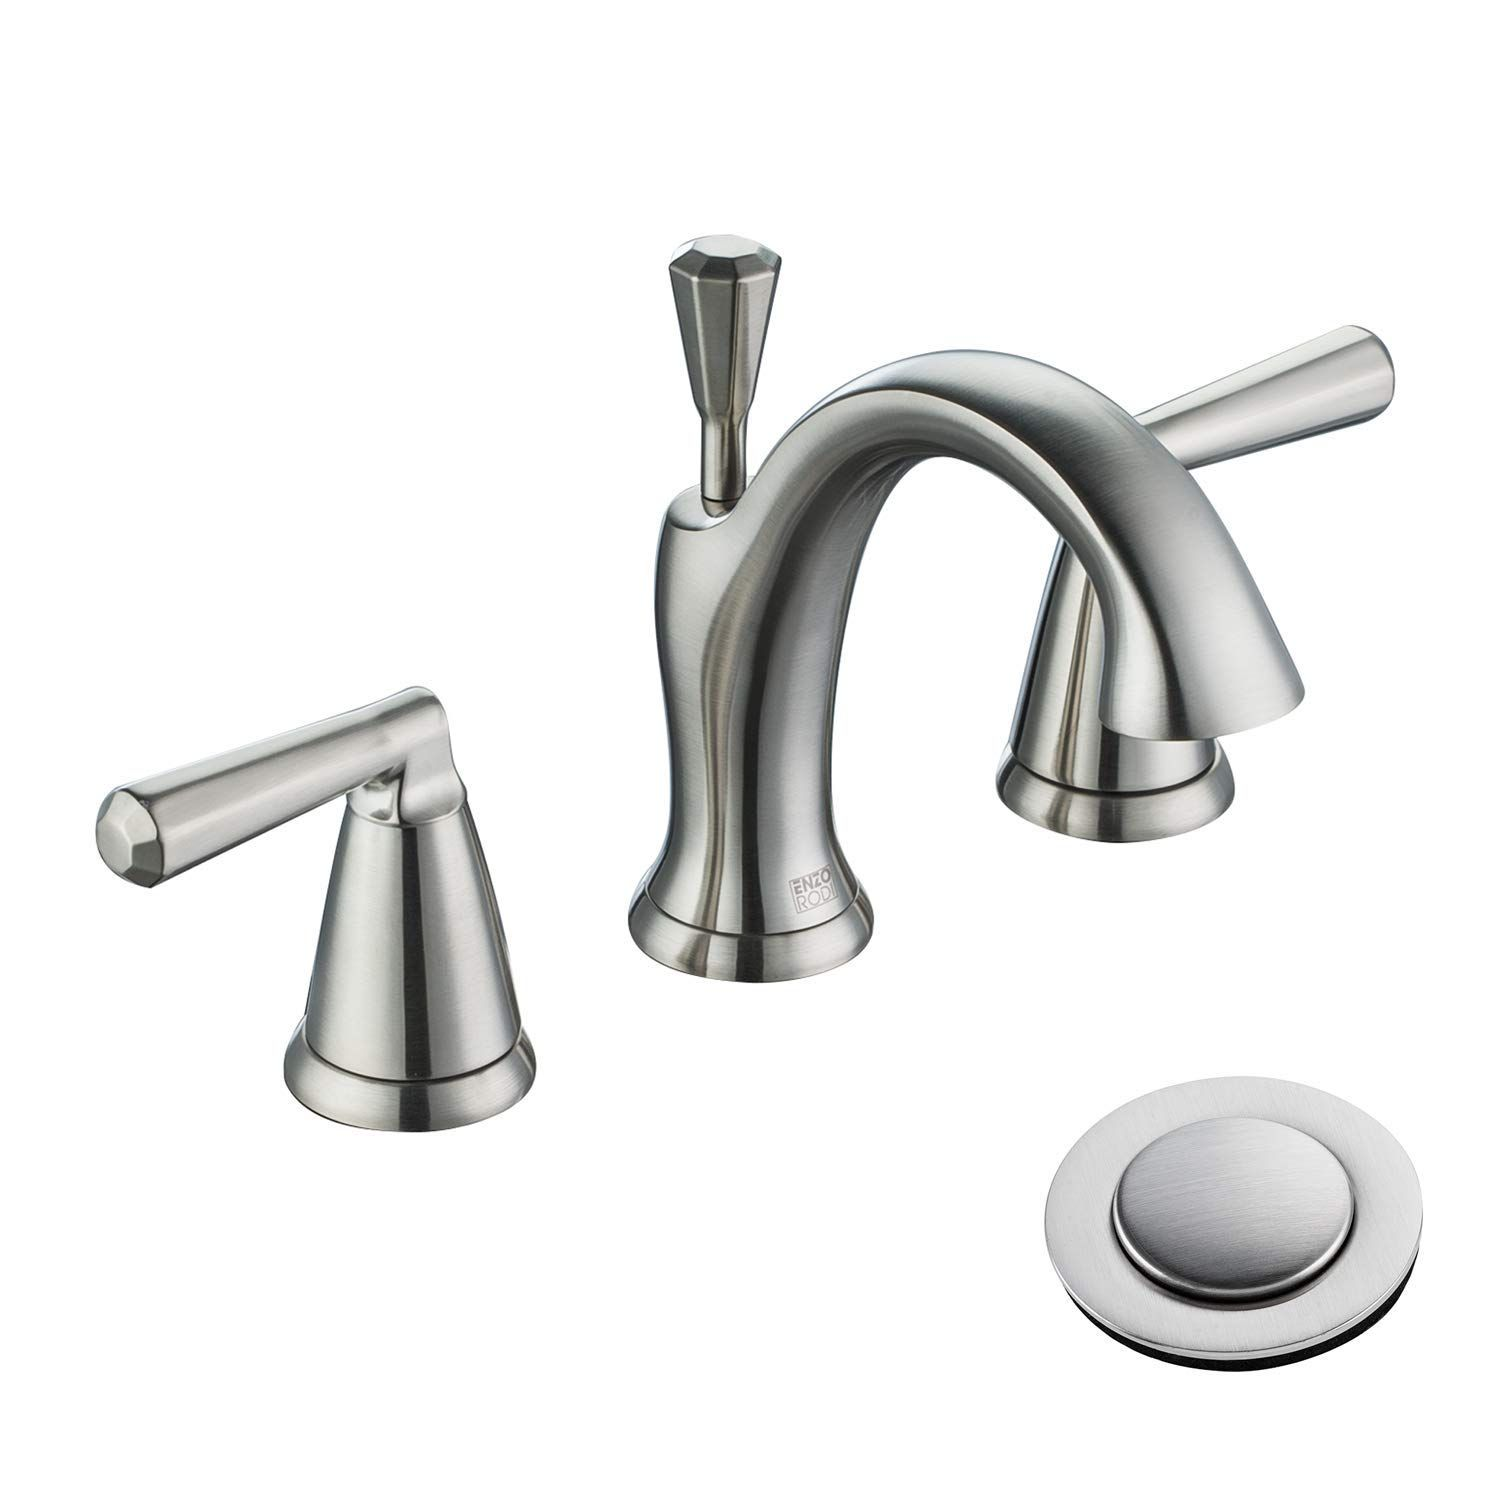 Enzo Rodi Two Handle Low Arc Solid Brass Widespread Bathroom Faucet With Ceramic Valve And Widespread Bathroom Faucet Bathroom Faucets Bathroom Faucets Chrome [ 1500 x 1500 Pixel ]